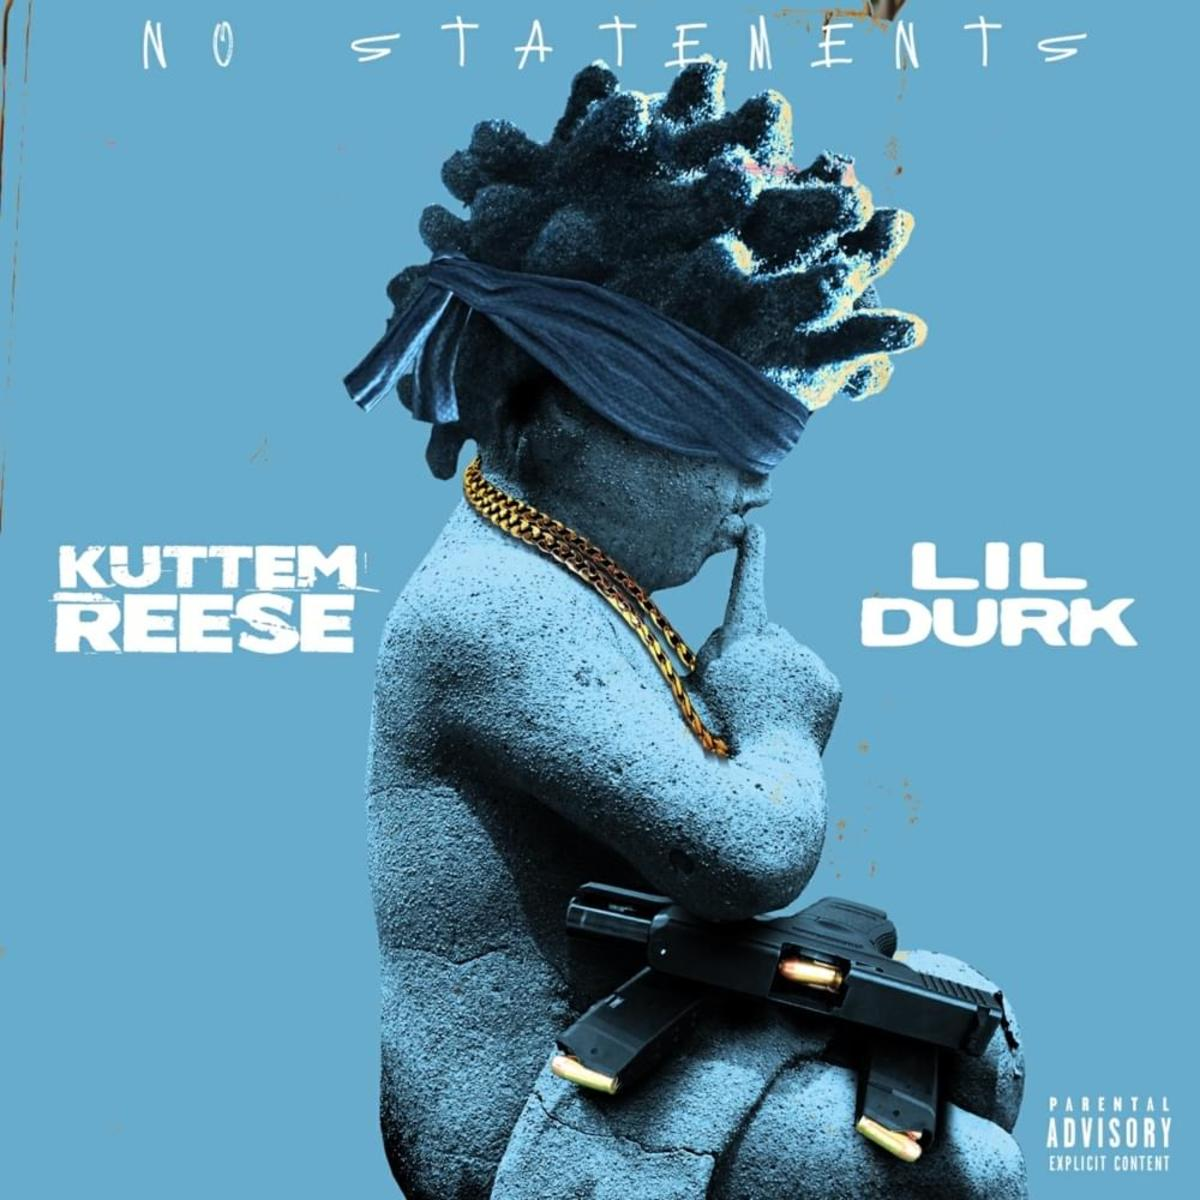 Kuttem Reese Feat. Lil Durk – No Statements